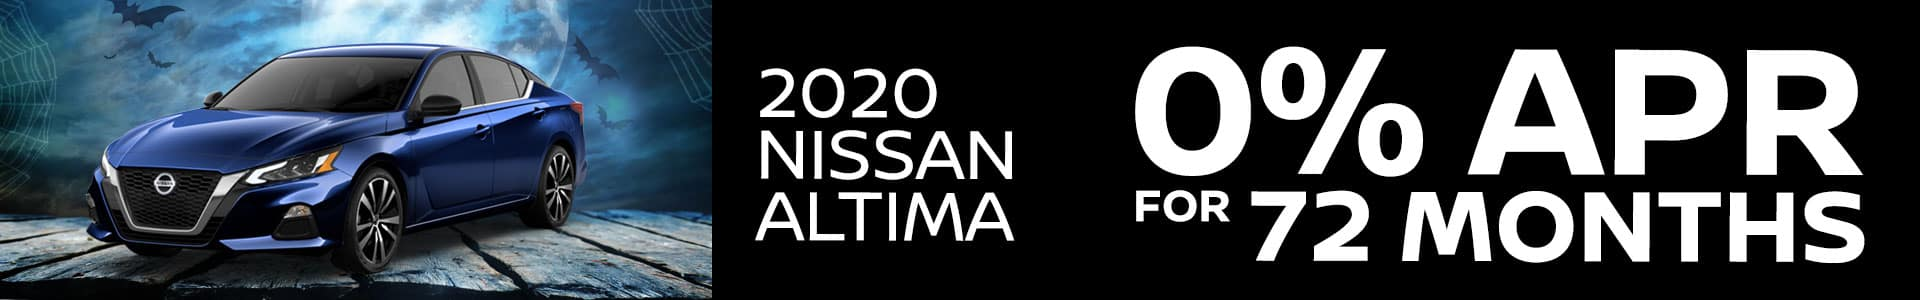 2020 Nissan Altima 0% APR for 72 Months